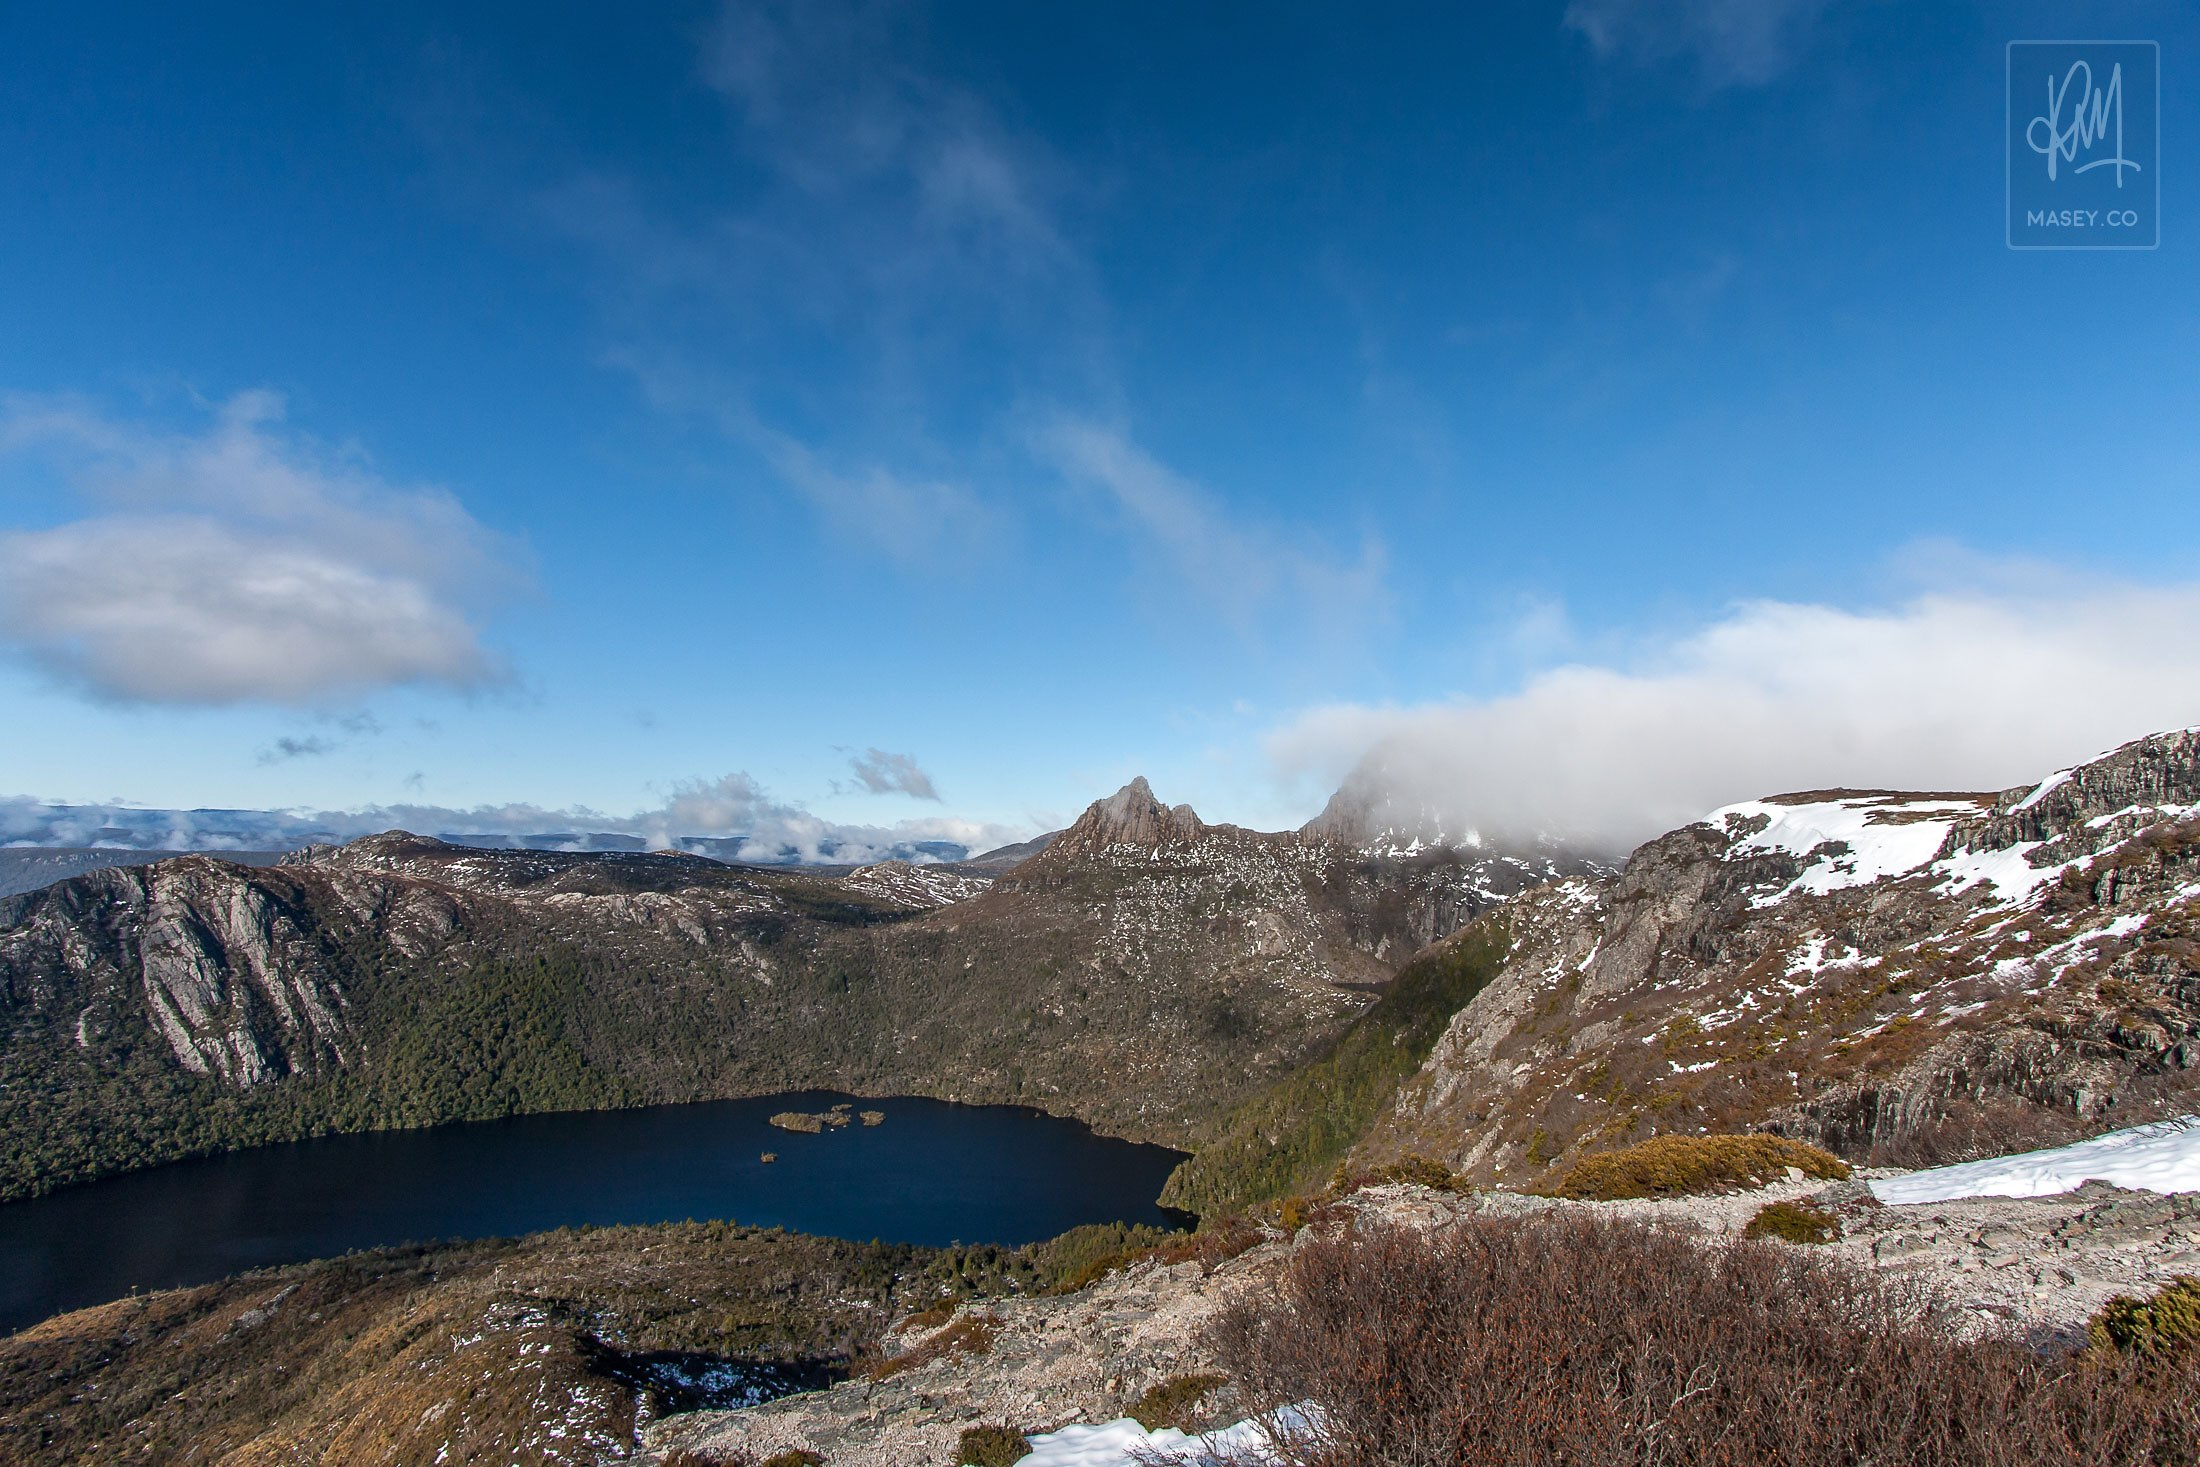 Views over Cradle Mountain